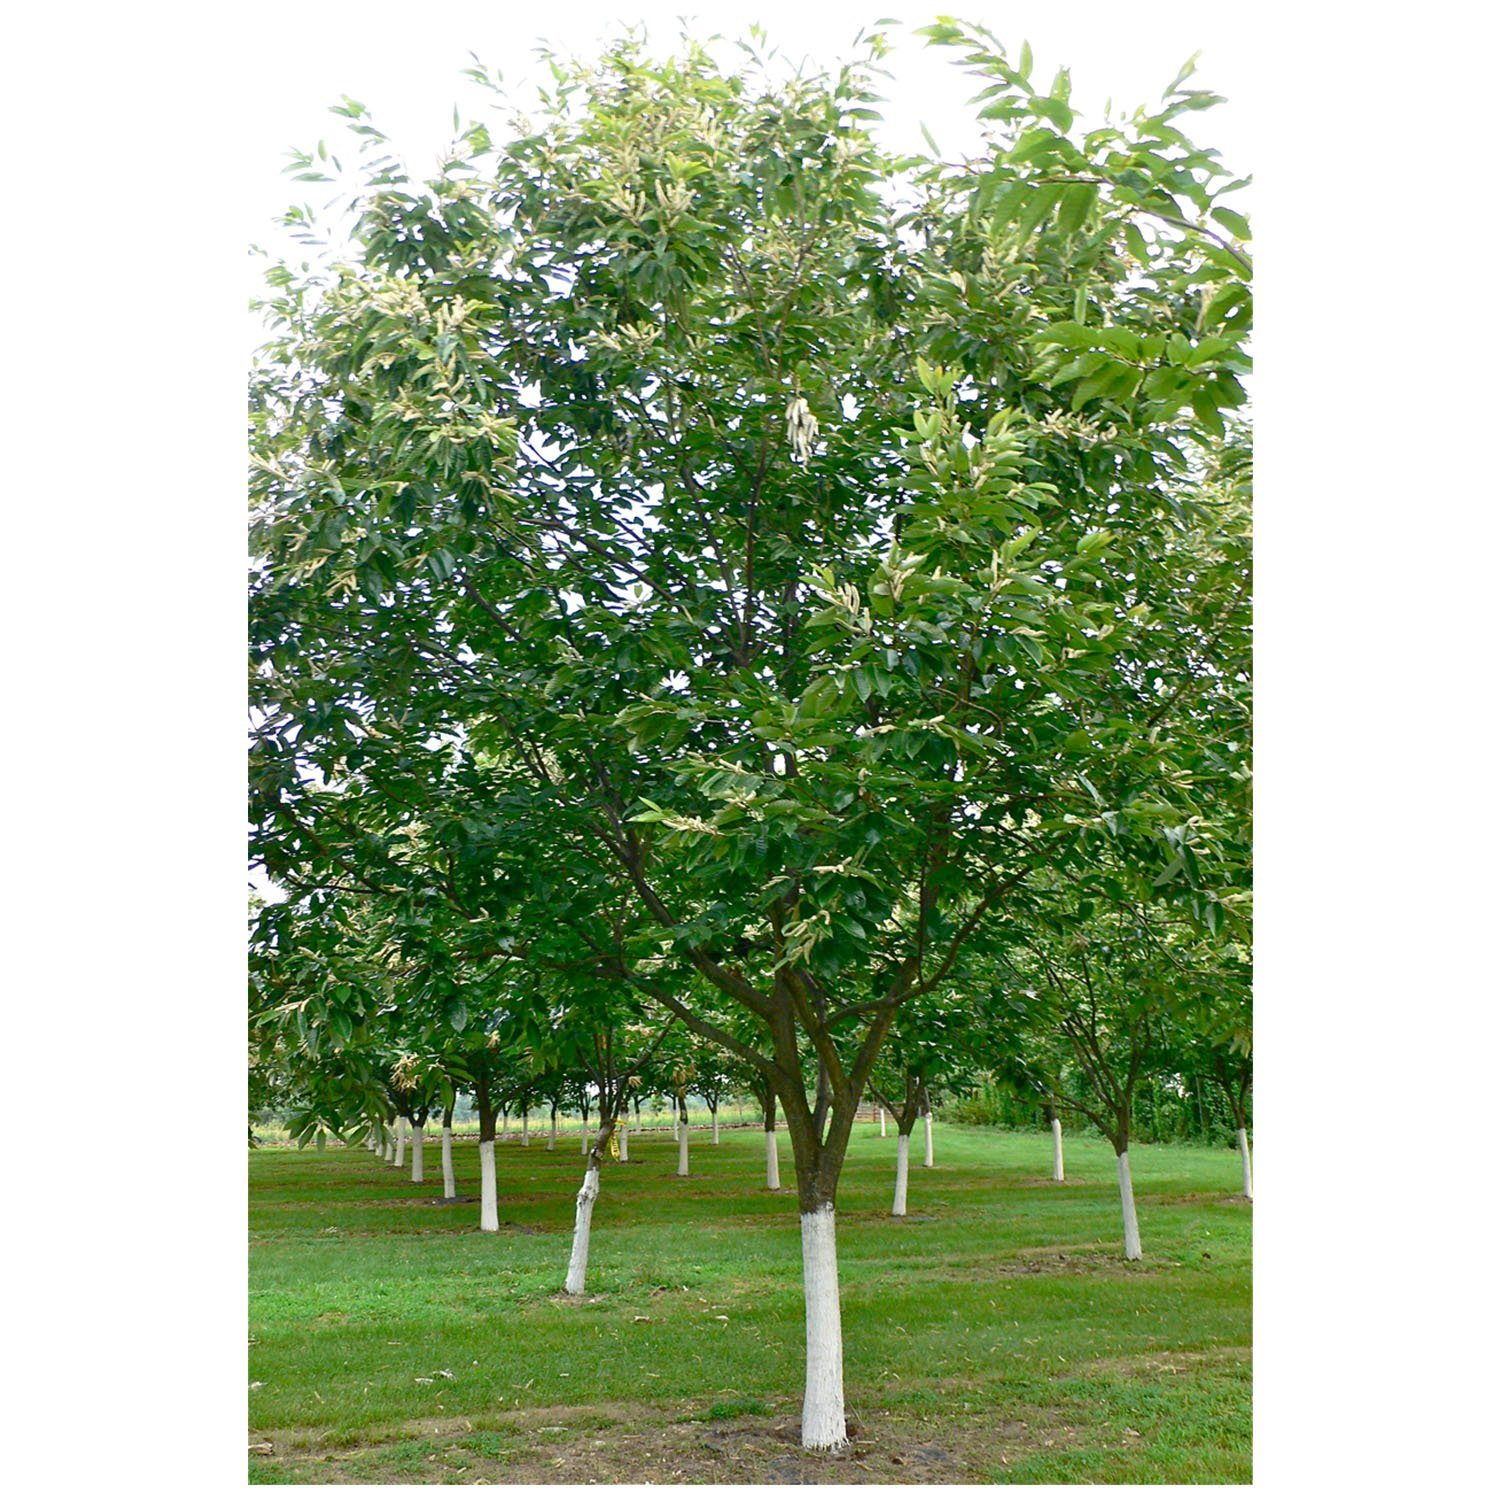 American Chestnut Tree - Hybrid - Castanea dentata X mollissima - Heavy Established - 2 Gallon Potted -1 Plant by Growers Solution by Grower's Solution (Image #1)